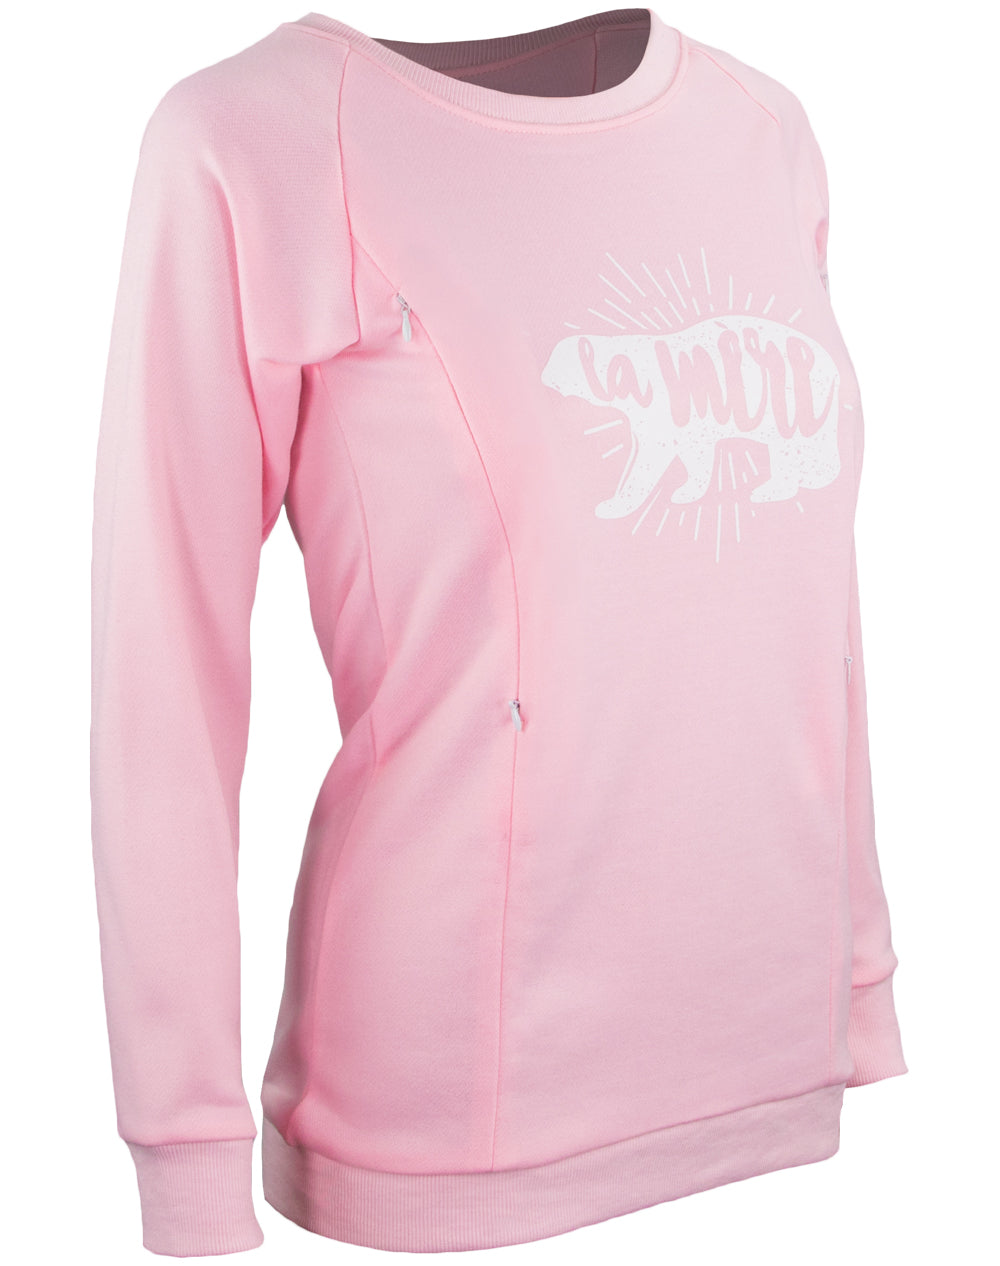 La Mere Breastfeeding Sweatshirt - Light Pink